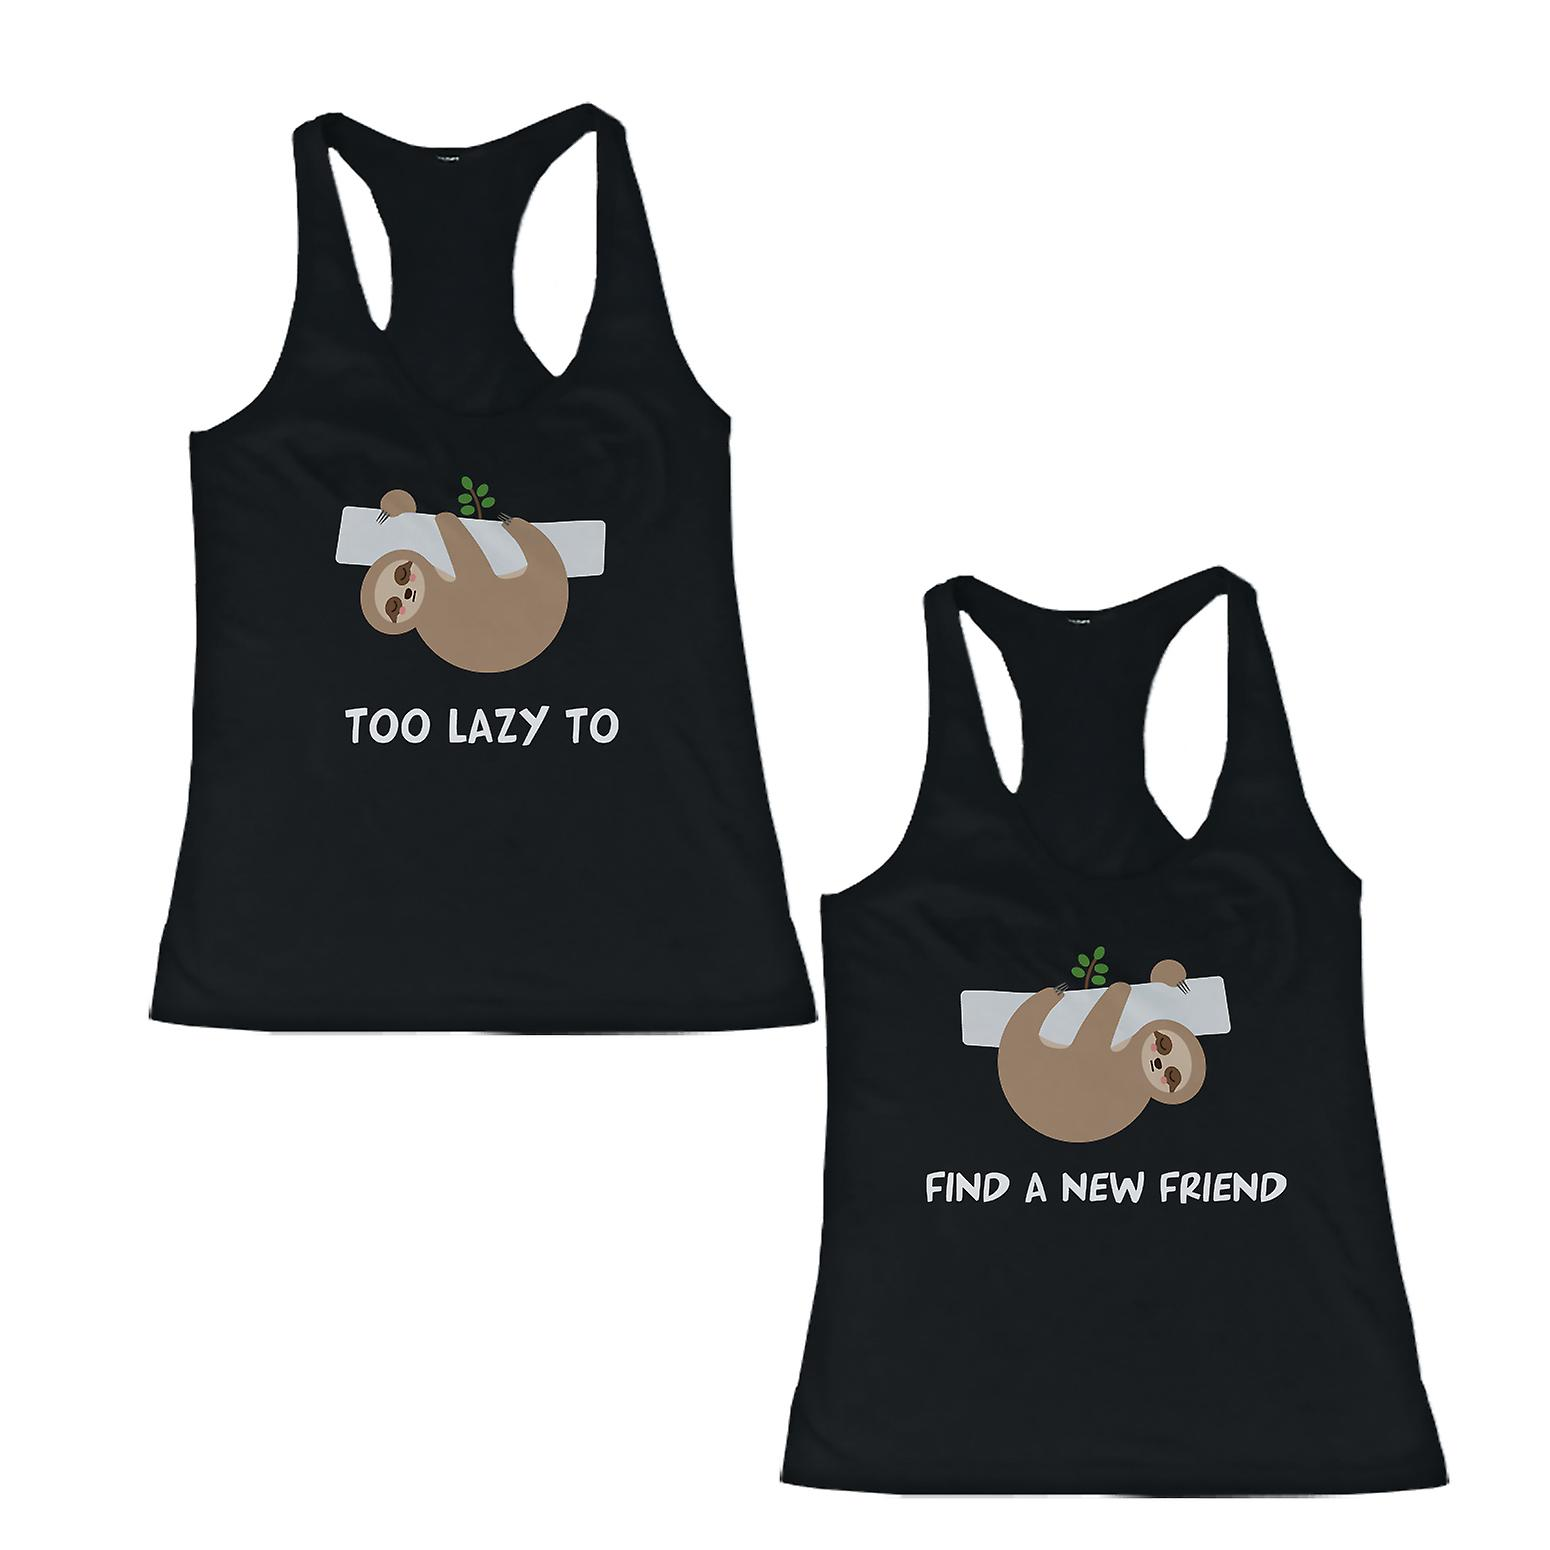 Cute BFF Matching Tank Top Too Lazy To Find A New Friend Best Friend's Shirts